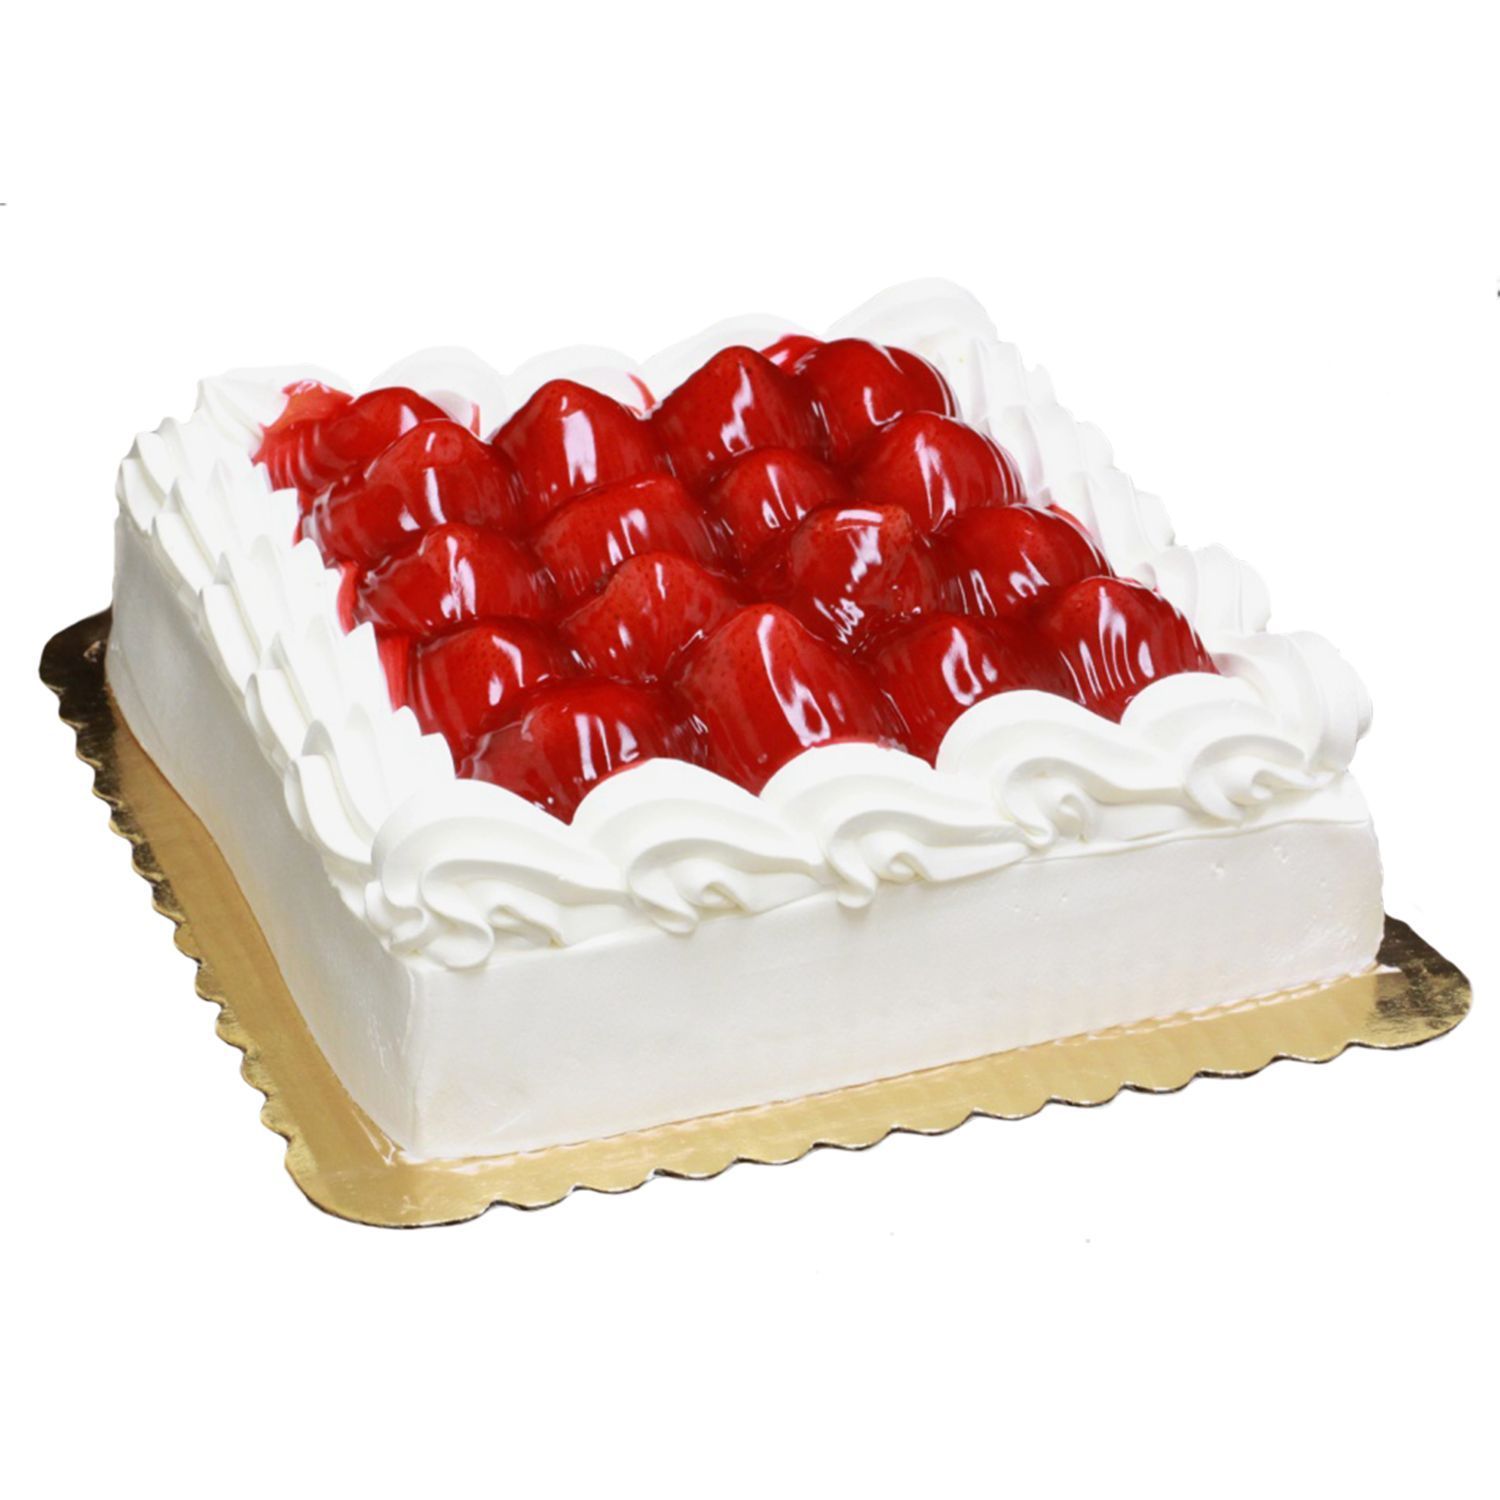 Artisan Fresh Single Layer Fresh Strawberry Cake The